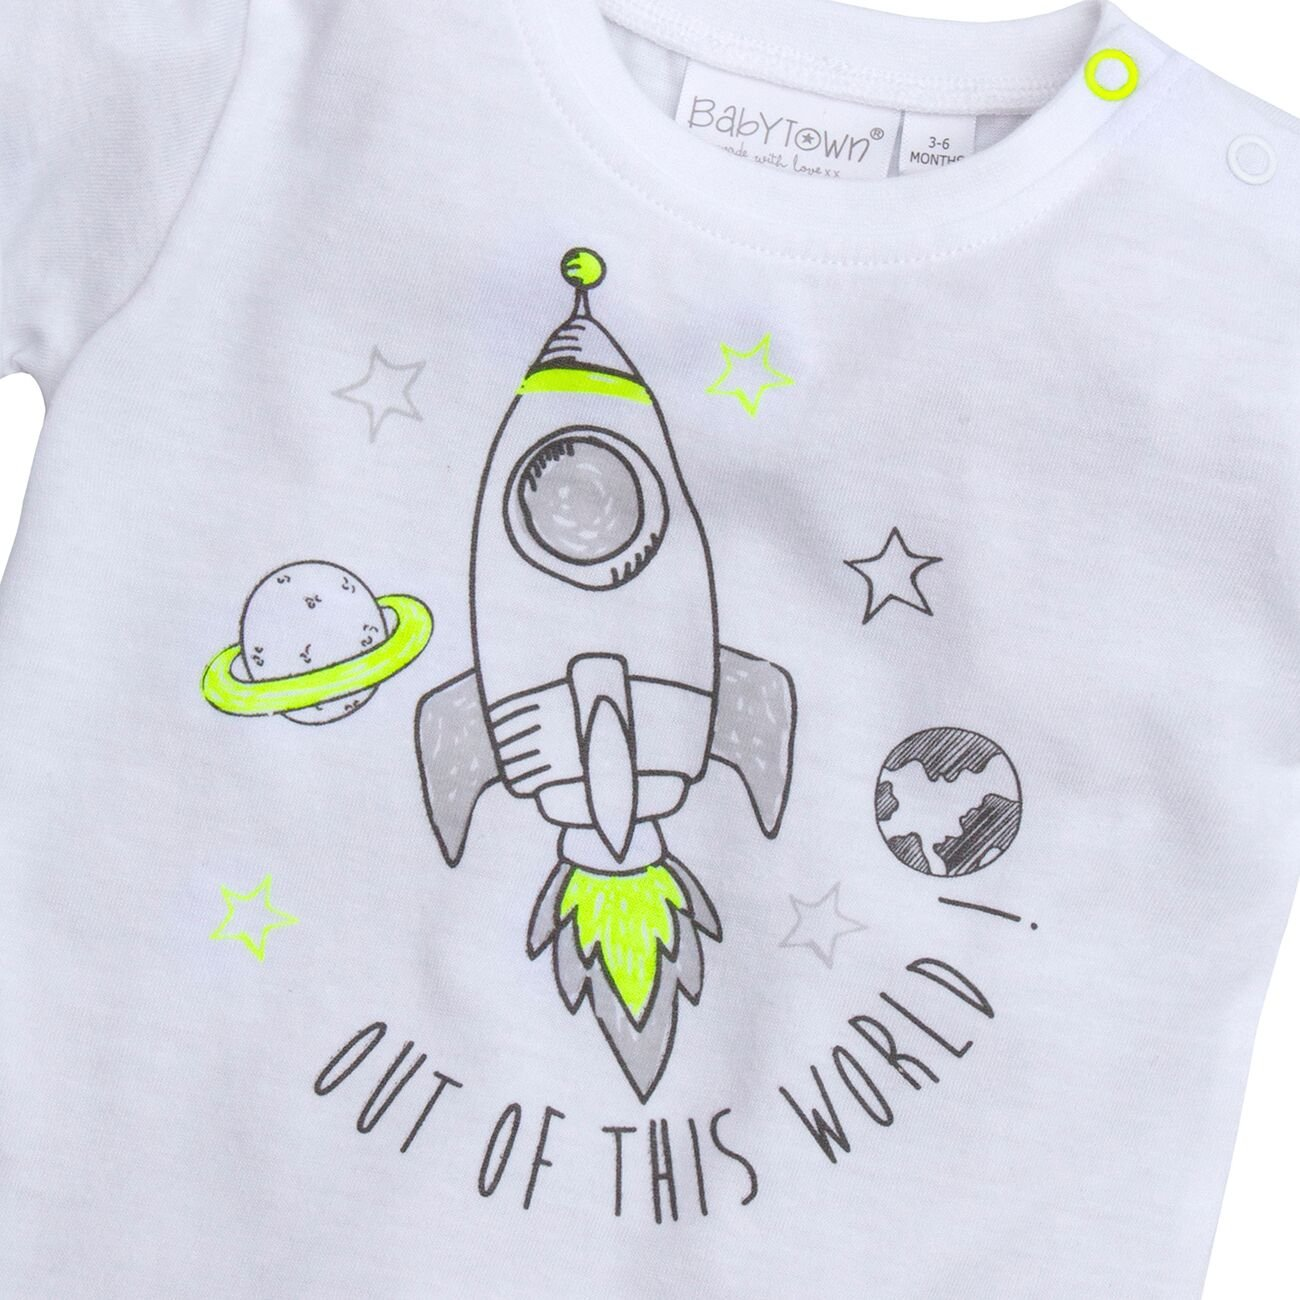 BABY TOWN Babytown Baby Boys Space Short Sleeved T Shirt /& Jog Pants Set